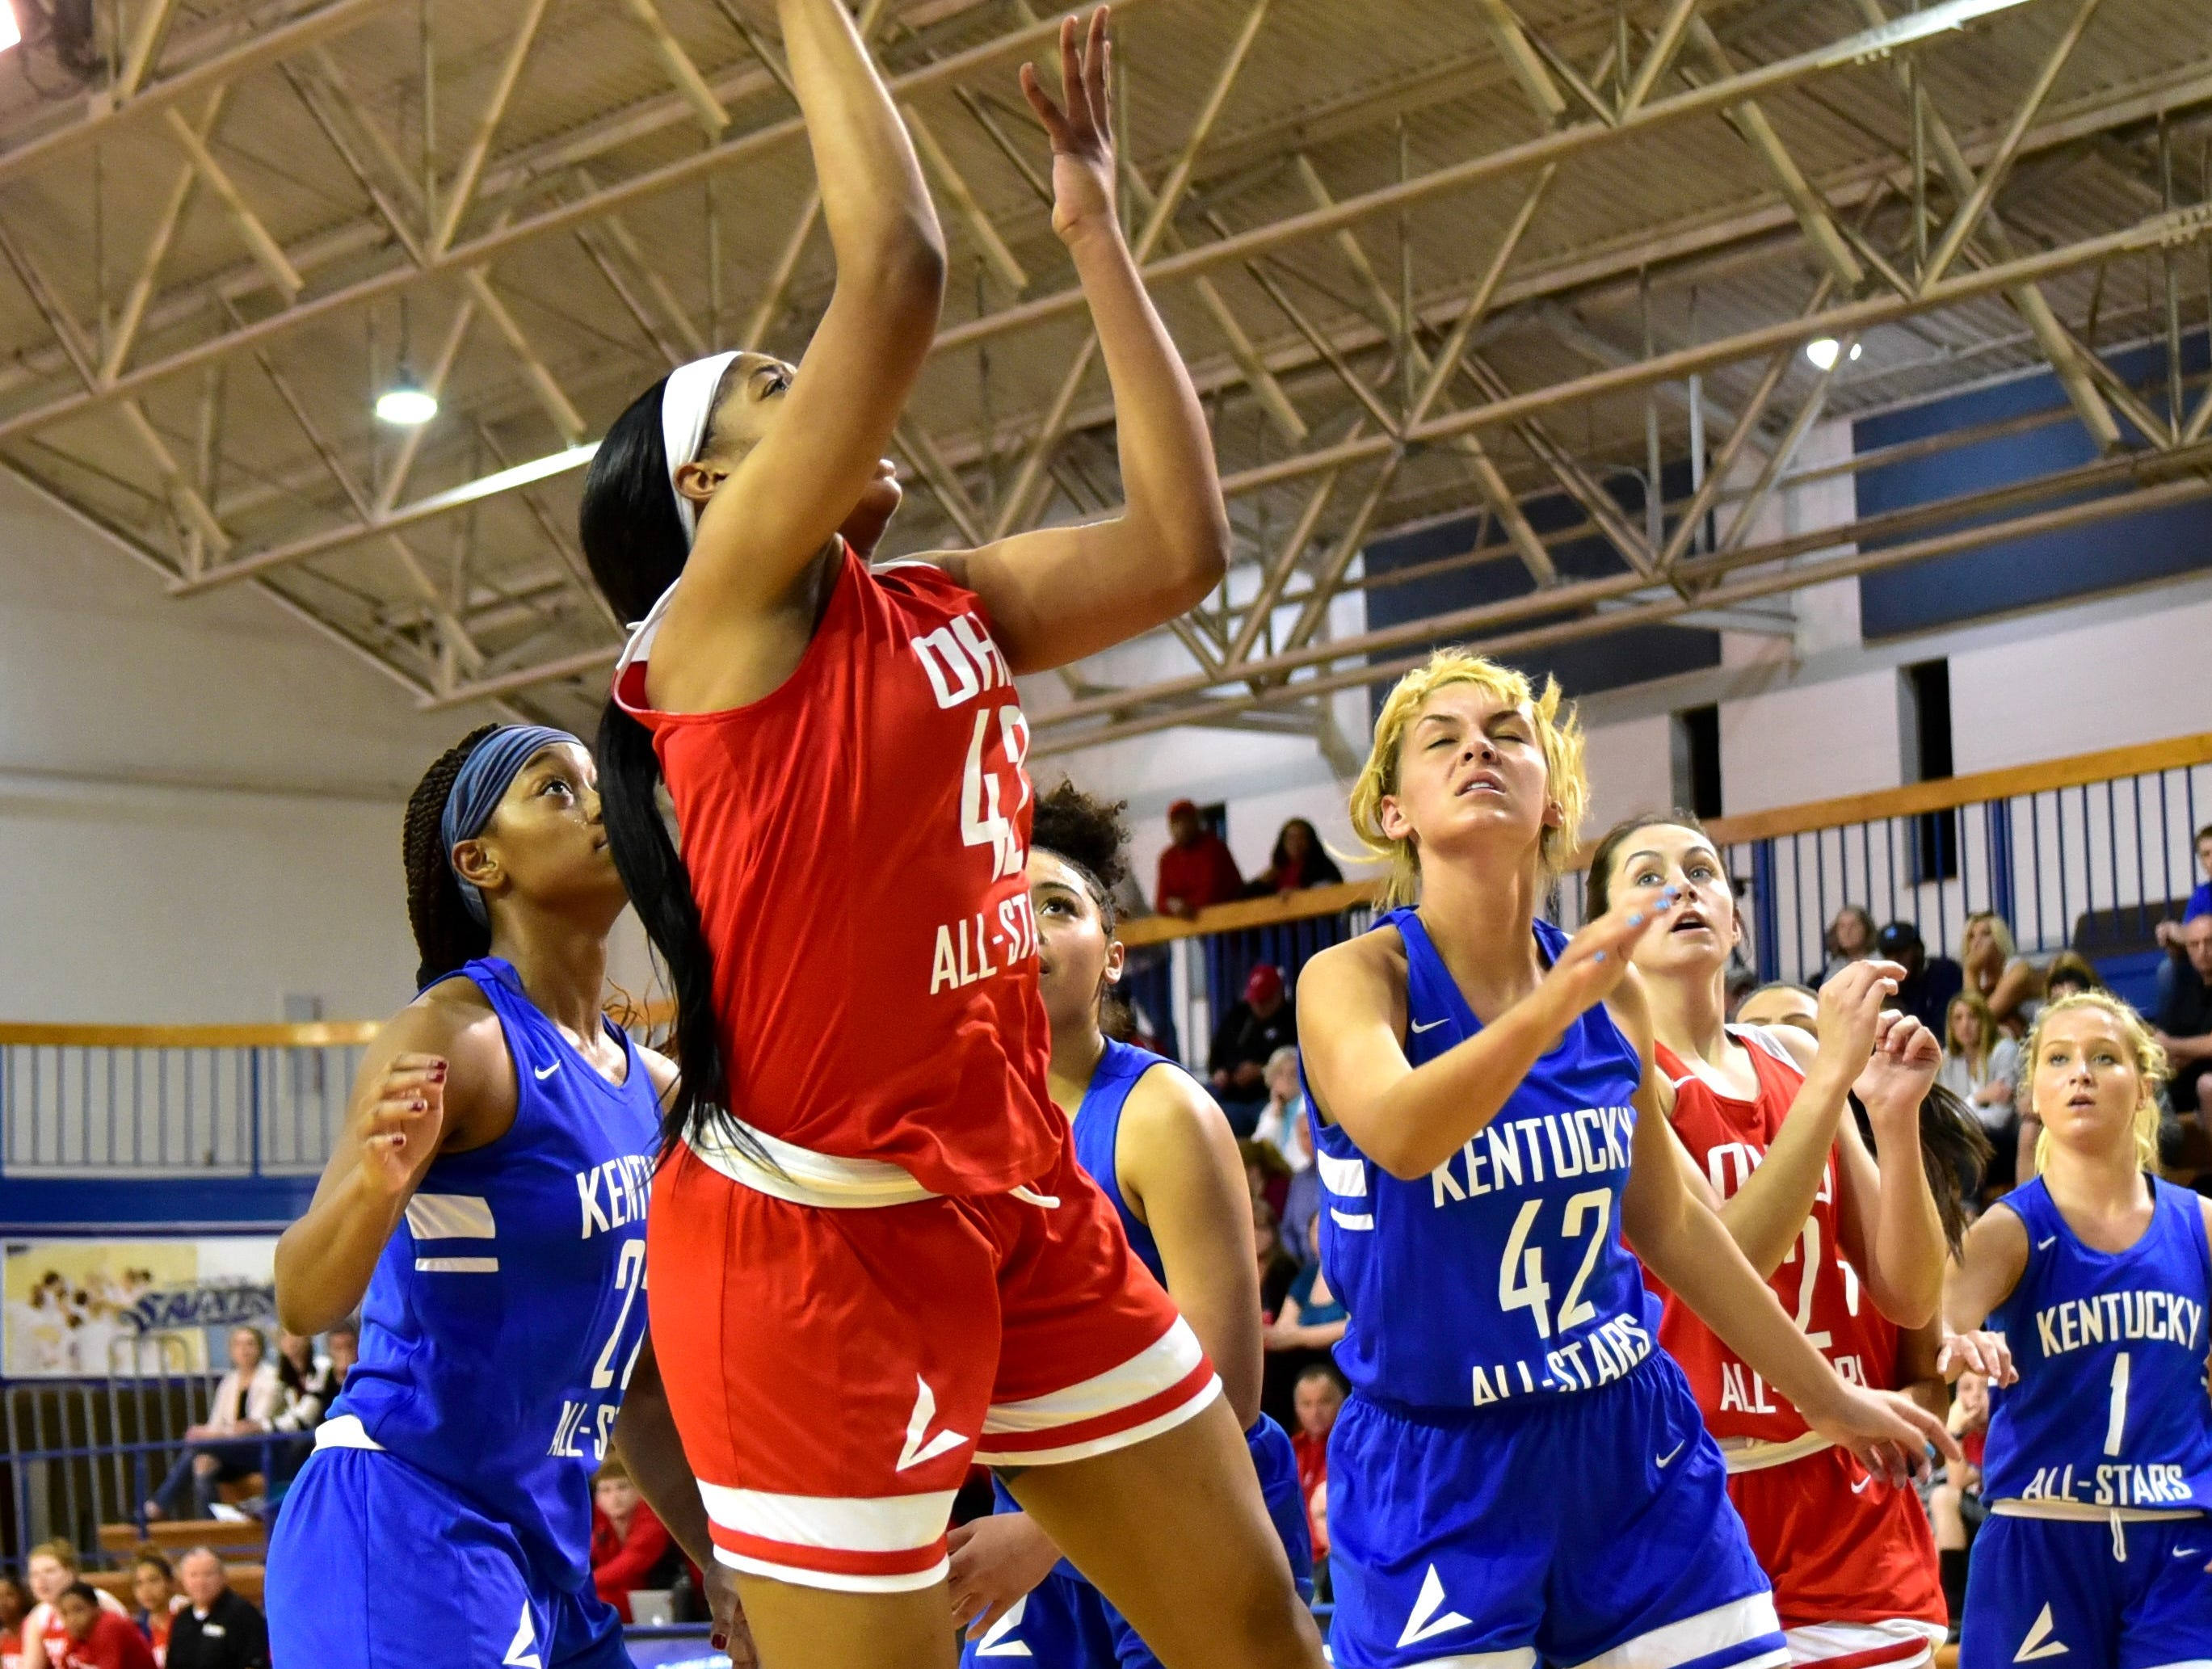 Kennedi Myles of Walnut Hills puts up a short jump shot for the Ohio girls team at the 28th Annual Ohio-Kentucky All Star Games played at Thomas More University, April 13, 2019